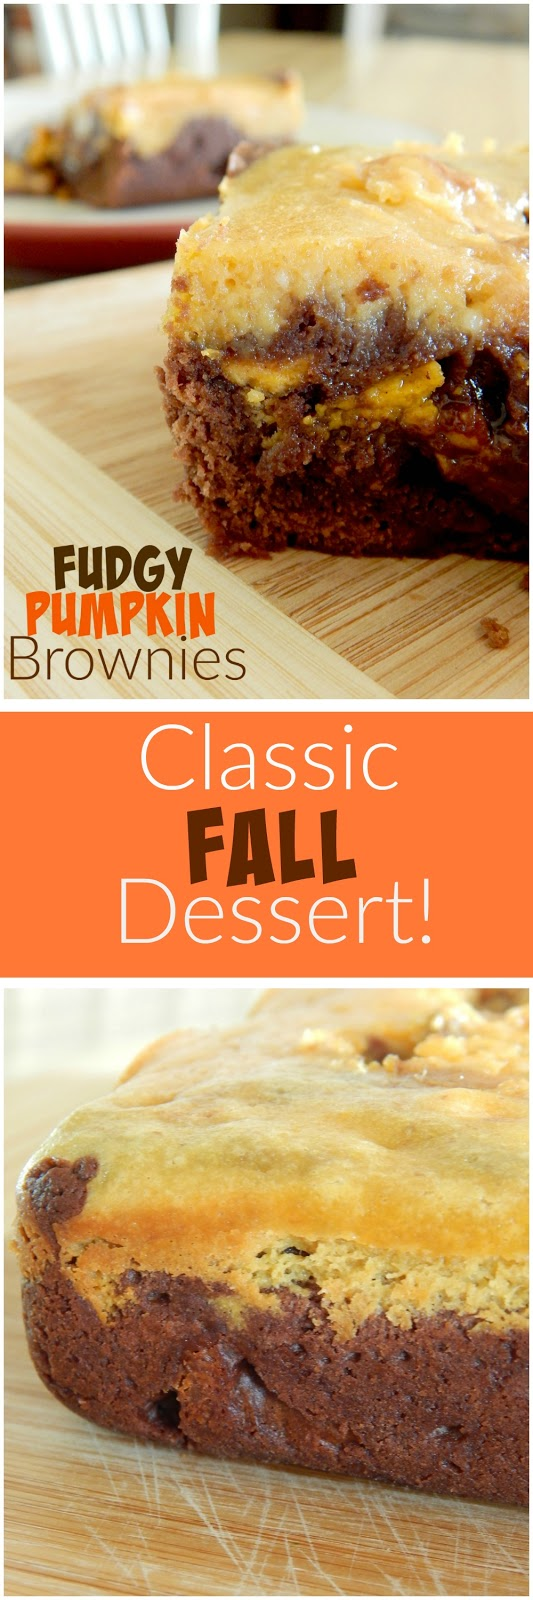 fudgy pumpkin brownies (sweetandsavoryfood.com)